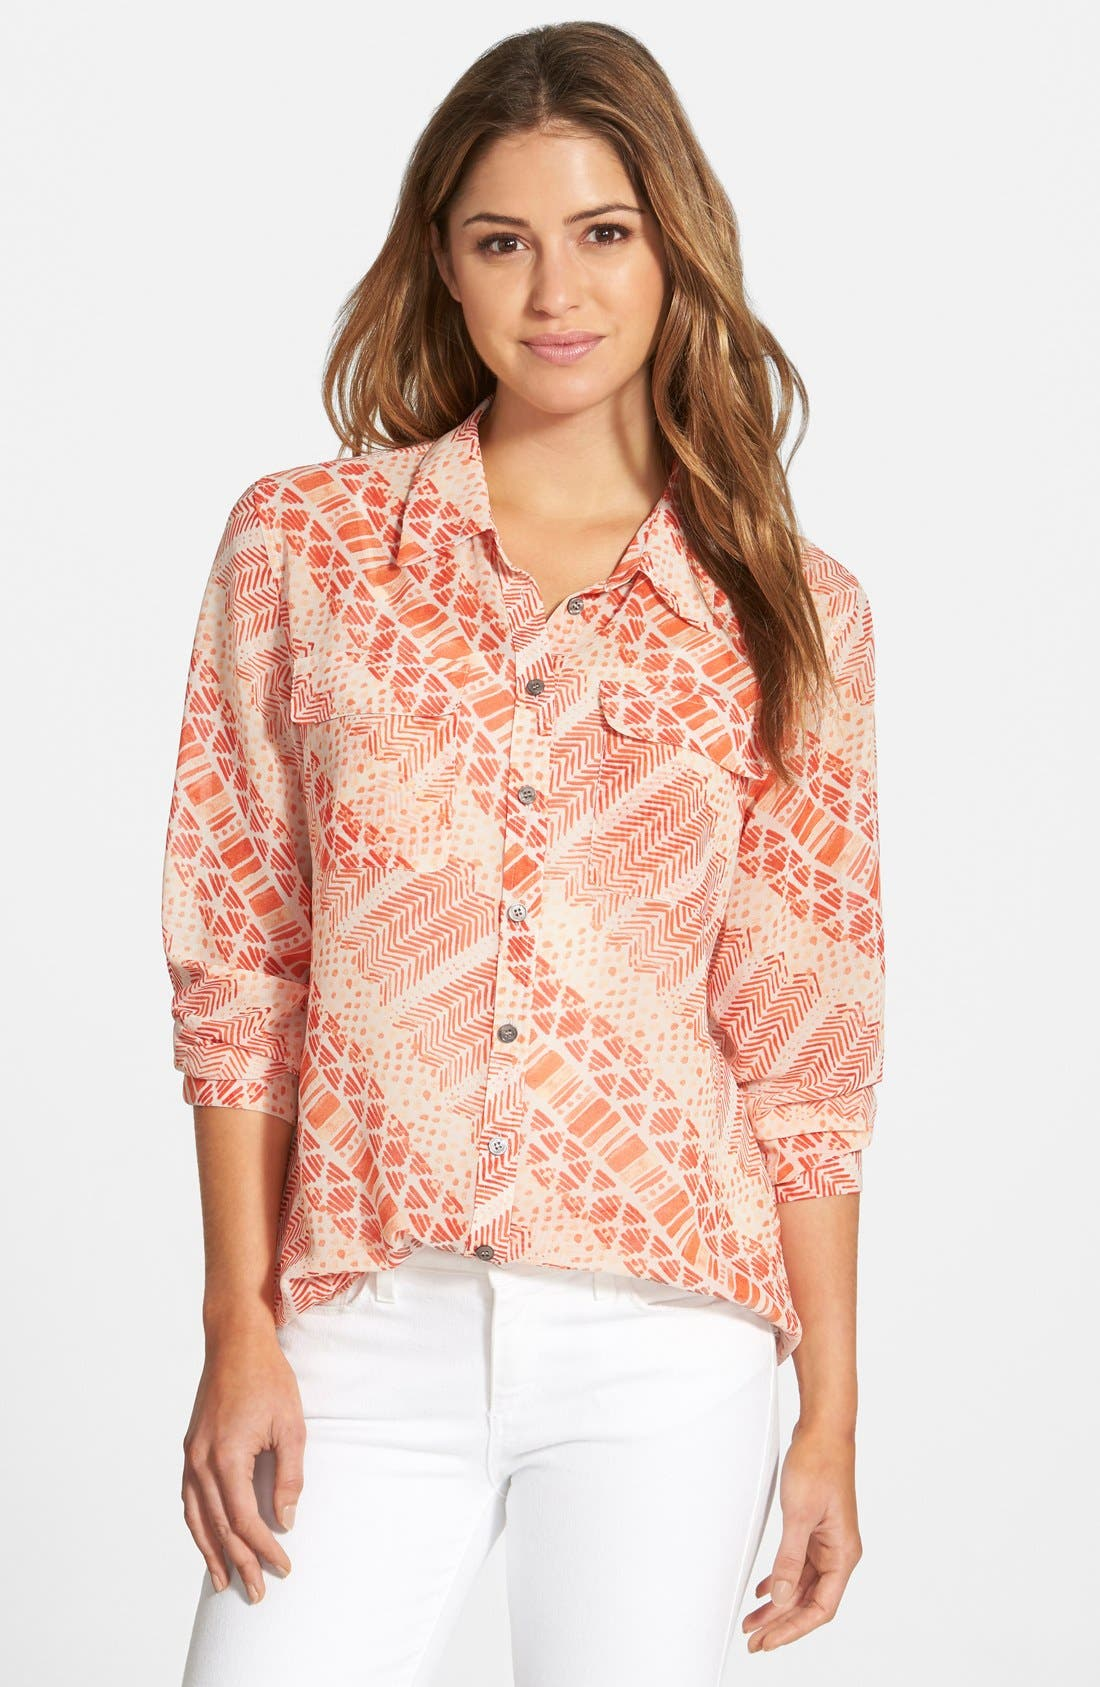 Alternate Image 1 Selected - Two by Vince Camuto Print Utility Shirt (Regular & Petite)